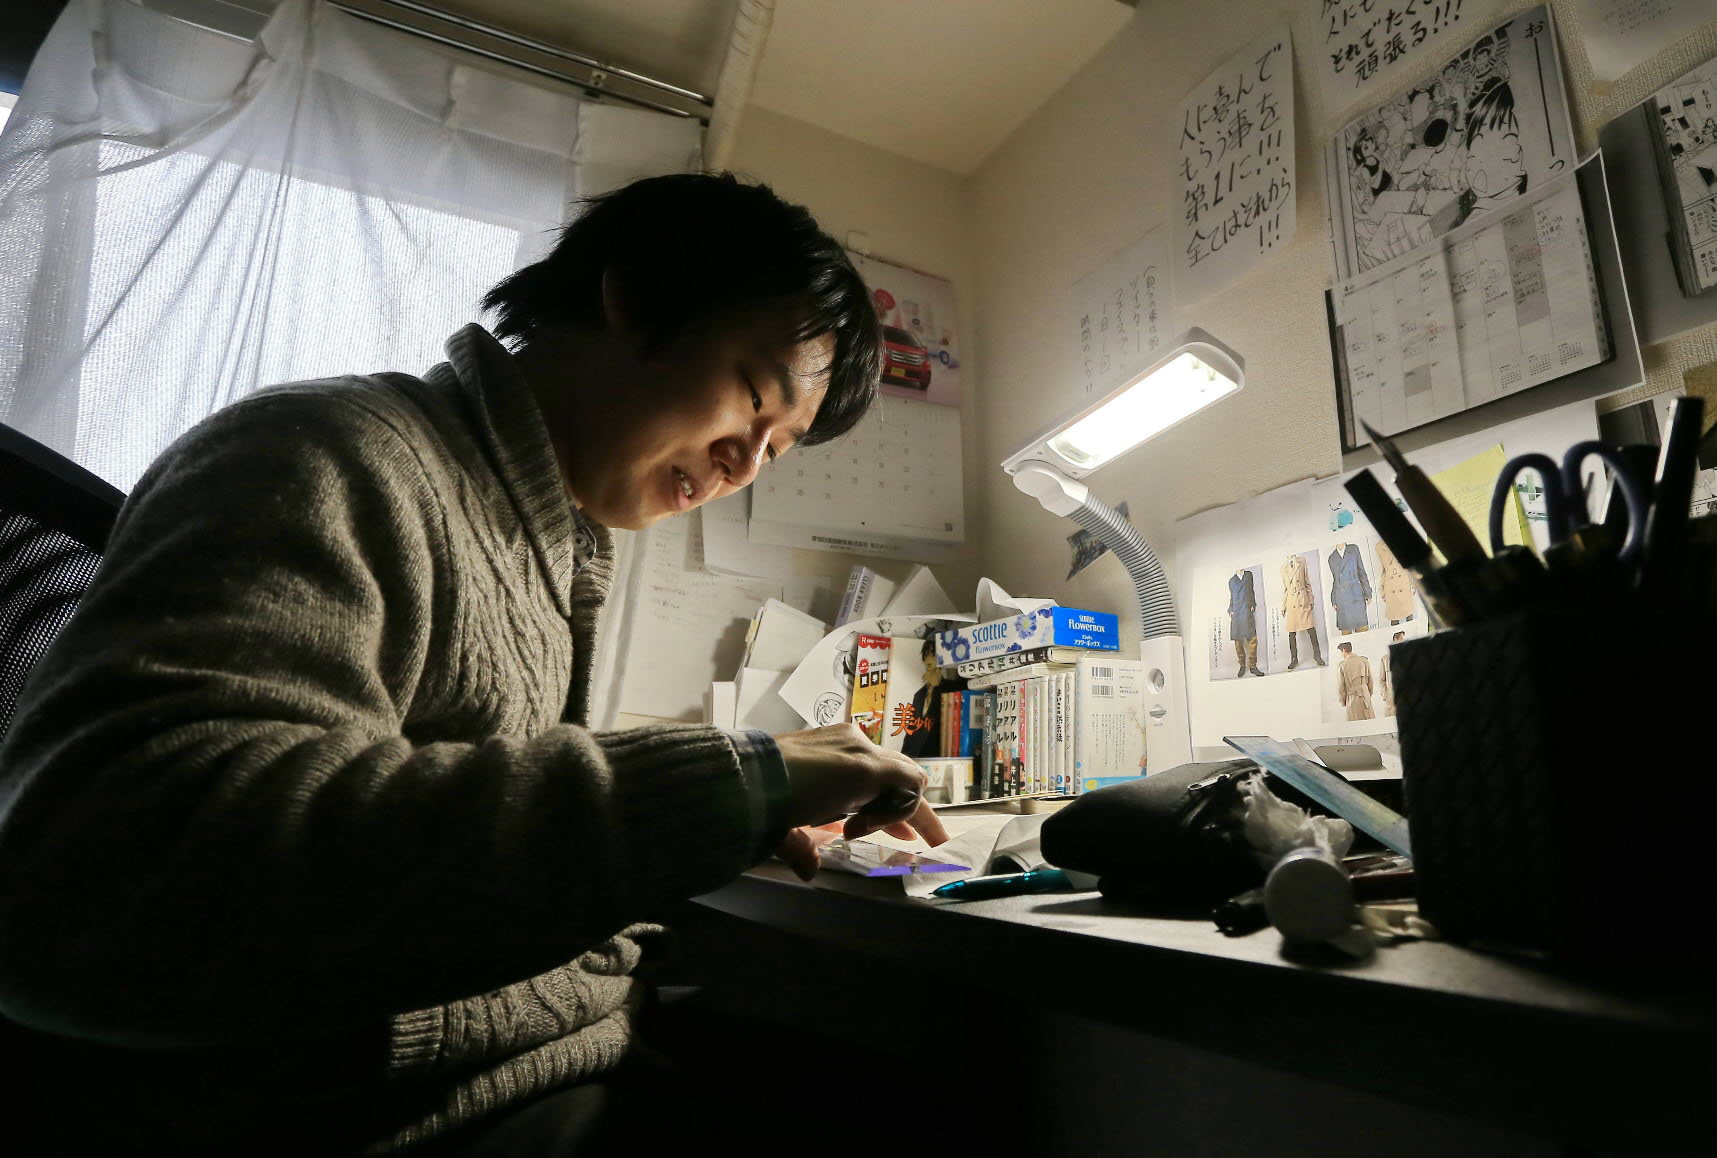 Manga writer Shoichi Tanazono works on a comic book in Nagoya that depicts his troubles with attending school as a child. | CHUNICHI SHIMBUN